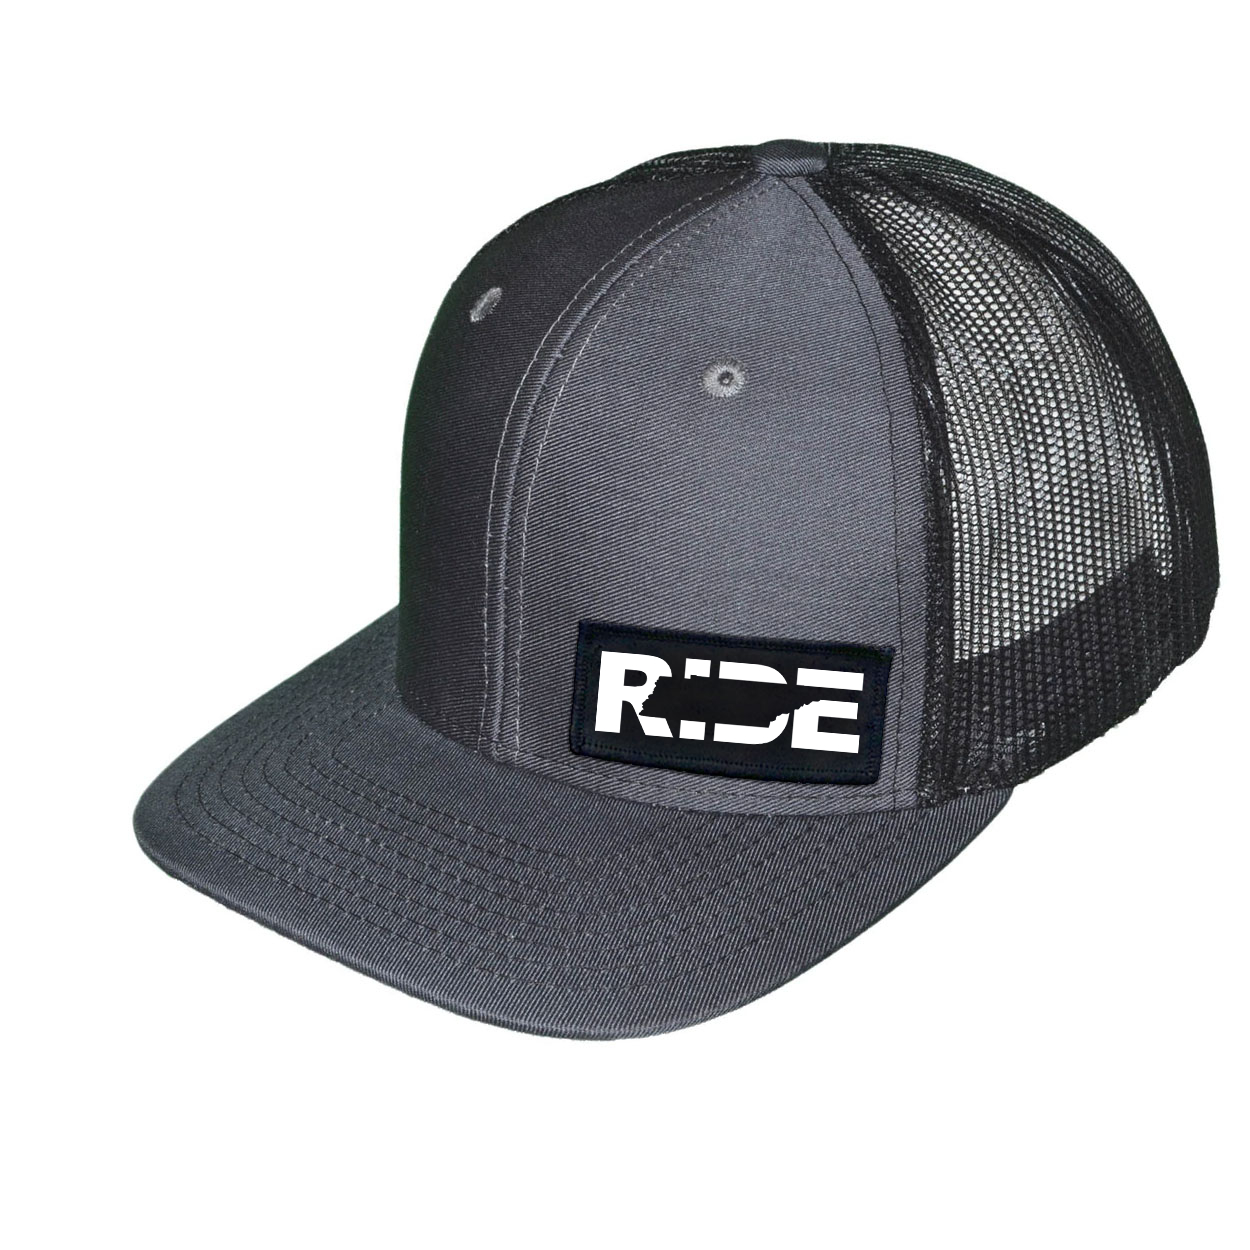 Ride Tennessee Night Out Woven Patch Snapback Trucker Hat Dark Gray/Black (White Logo)